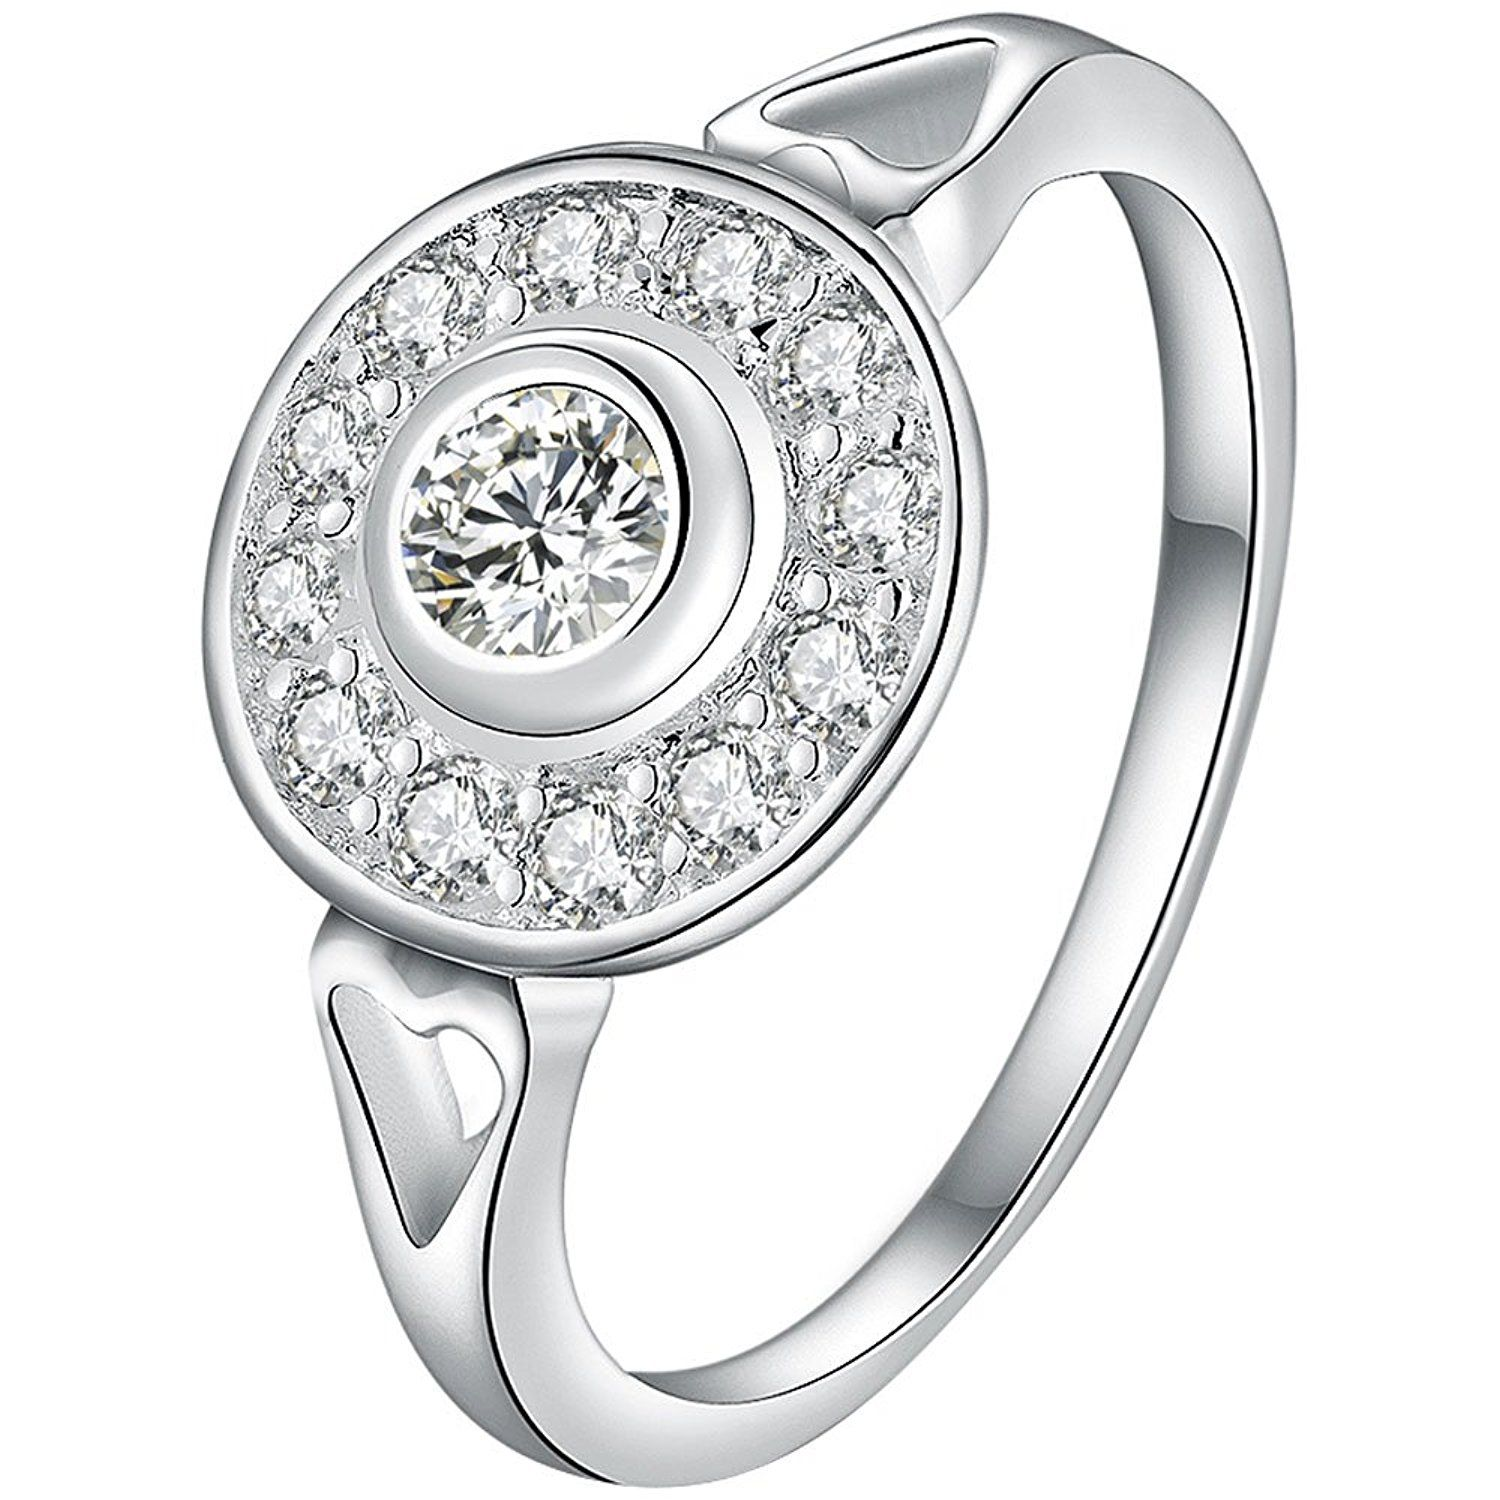 Penny Deals BOHG Jewelry Womens 925 Sterling Silver Plated Cubic